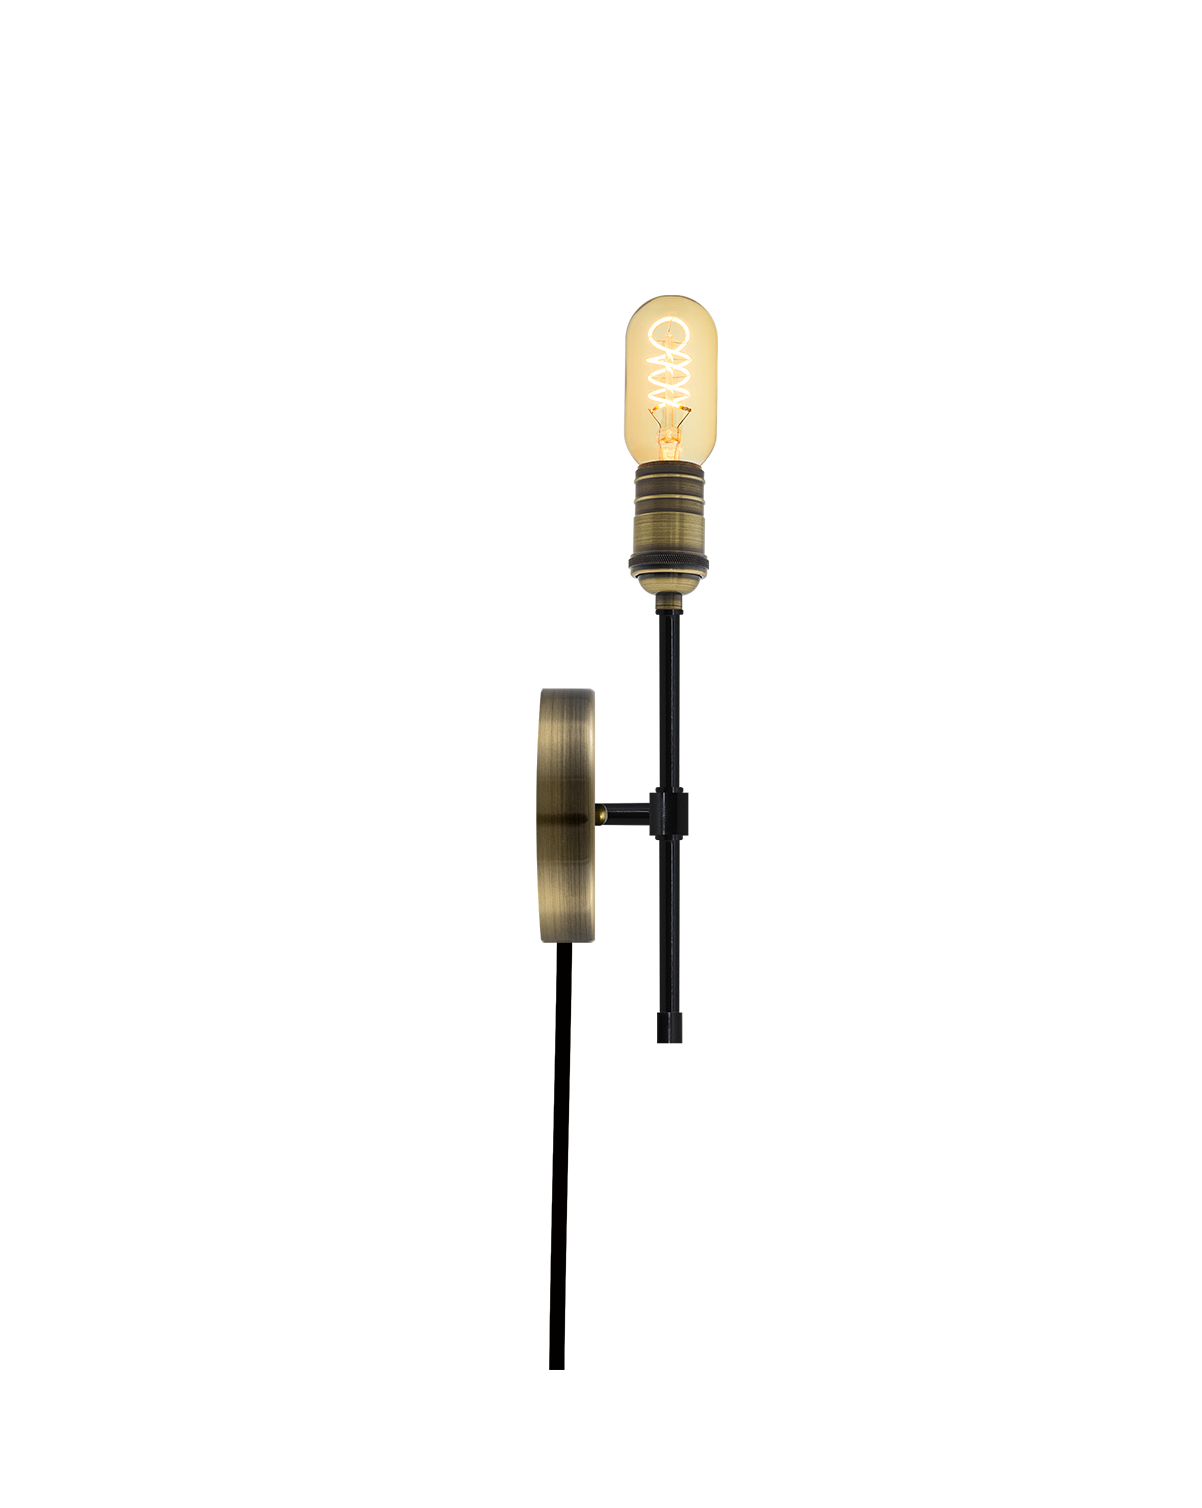 Plug-In Torch Wall Sconce: Black and Antique Brass Hangout Lighting